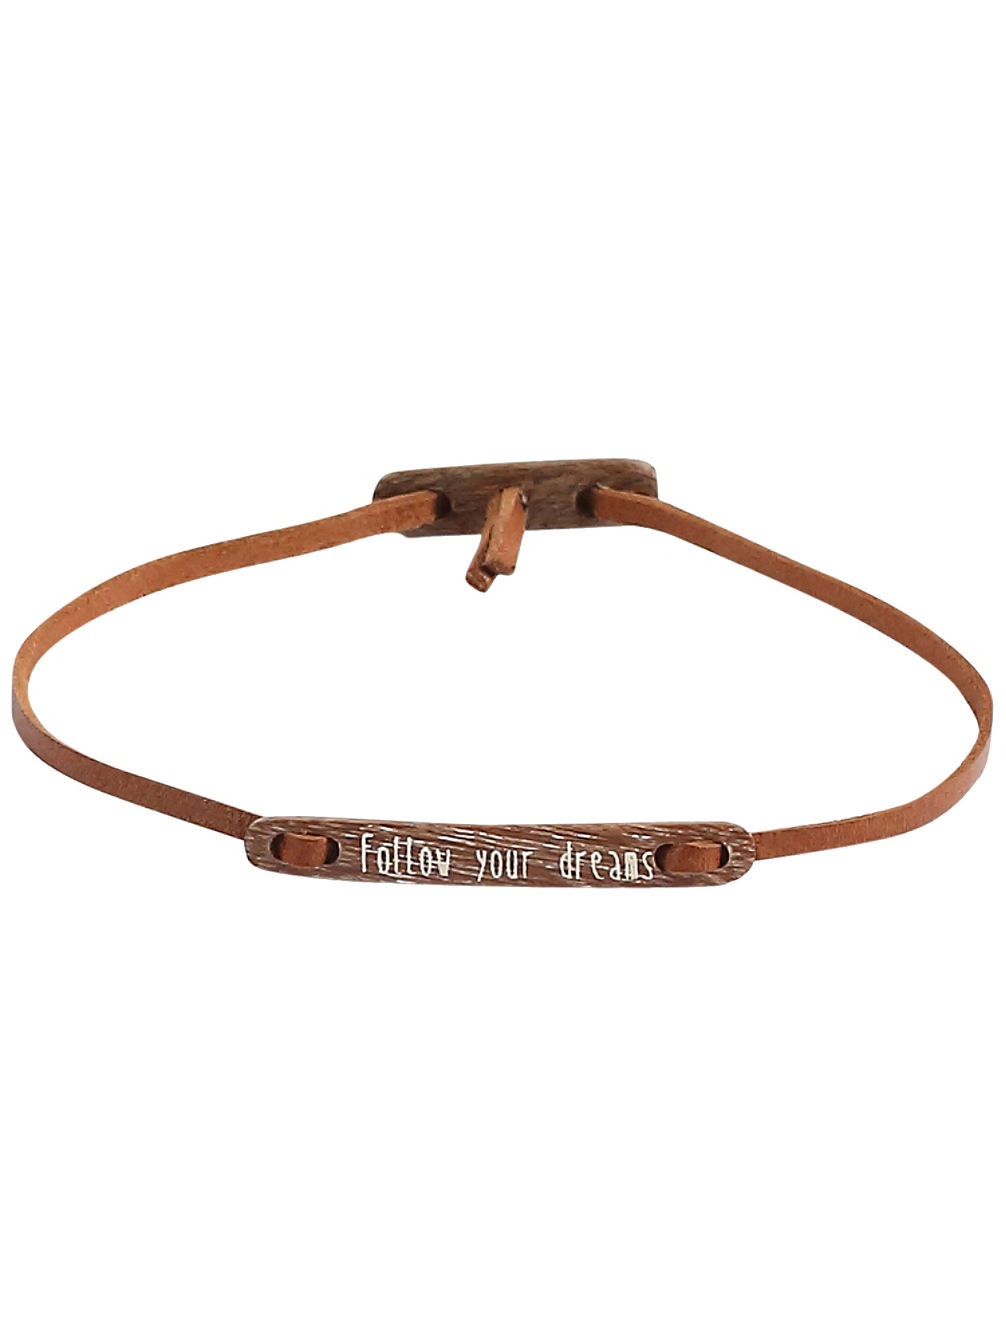 Message Follow your Dreams Bracelet